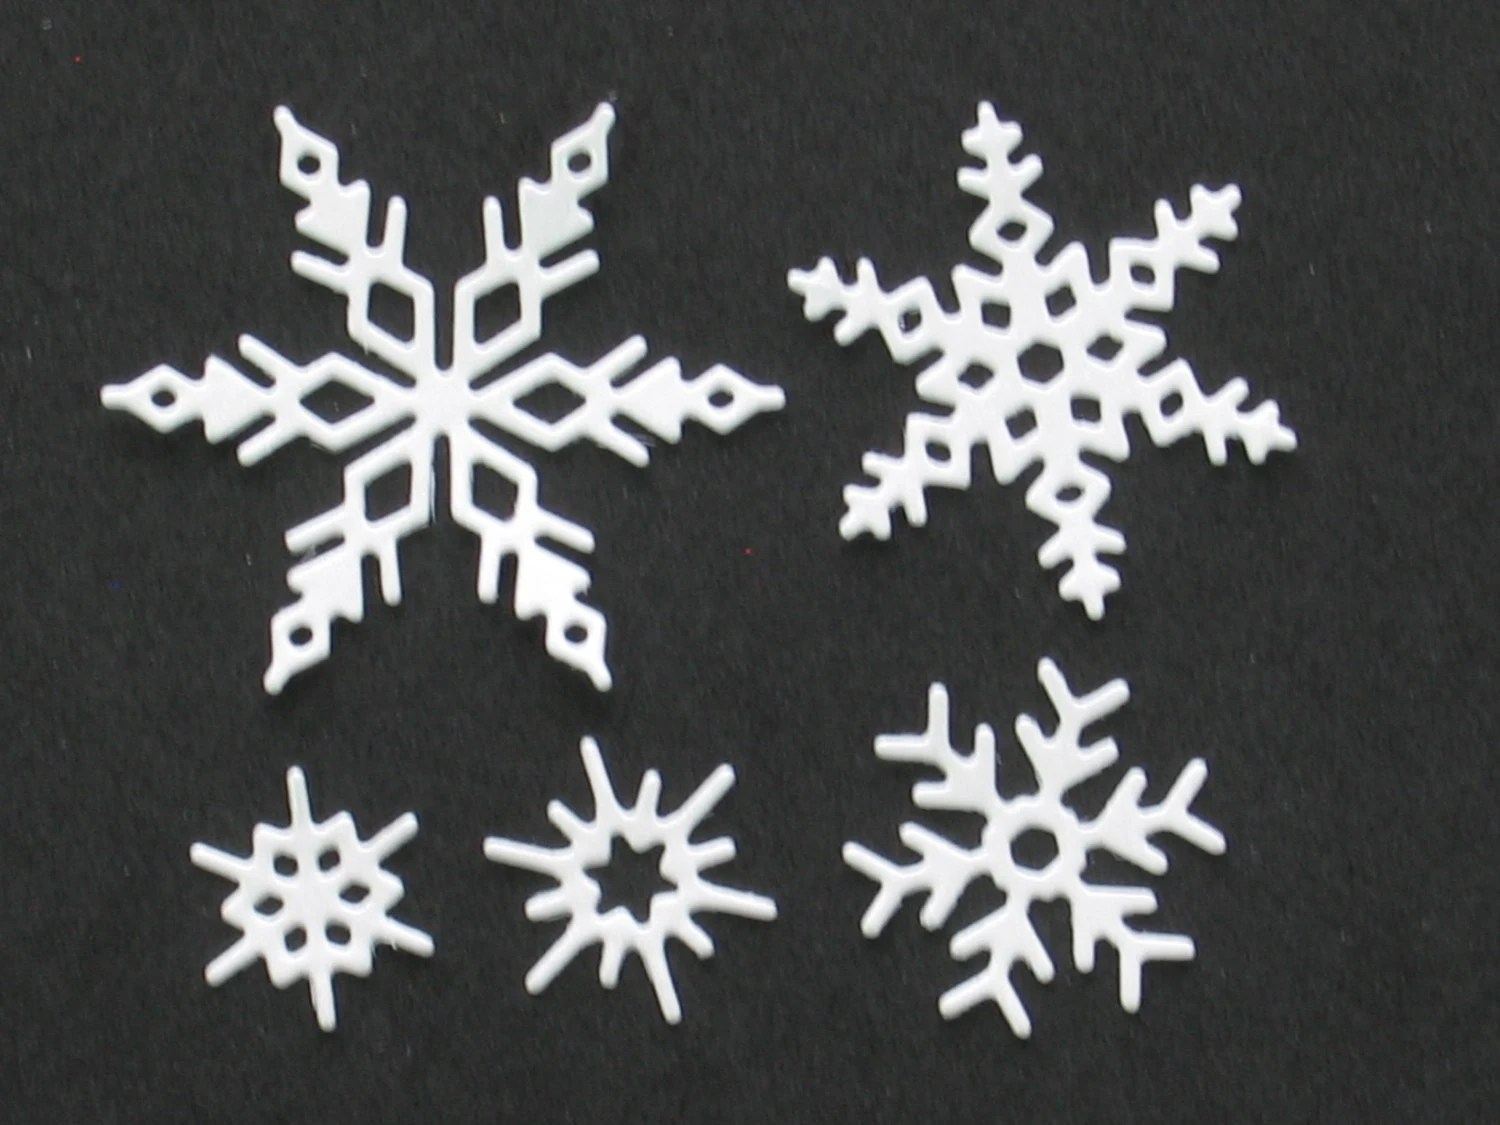 Snowflakes Snowflake Shapes Snowflake Cuts Winter